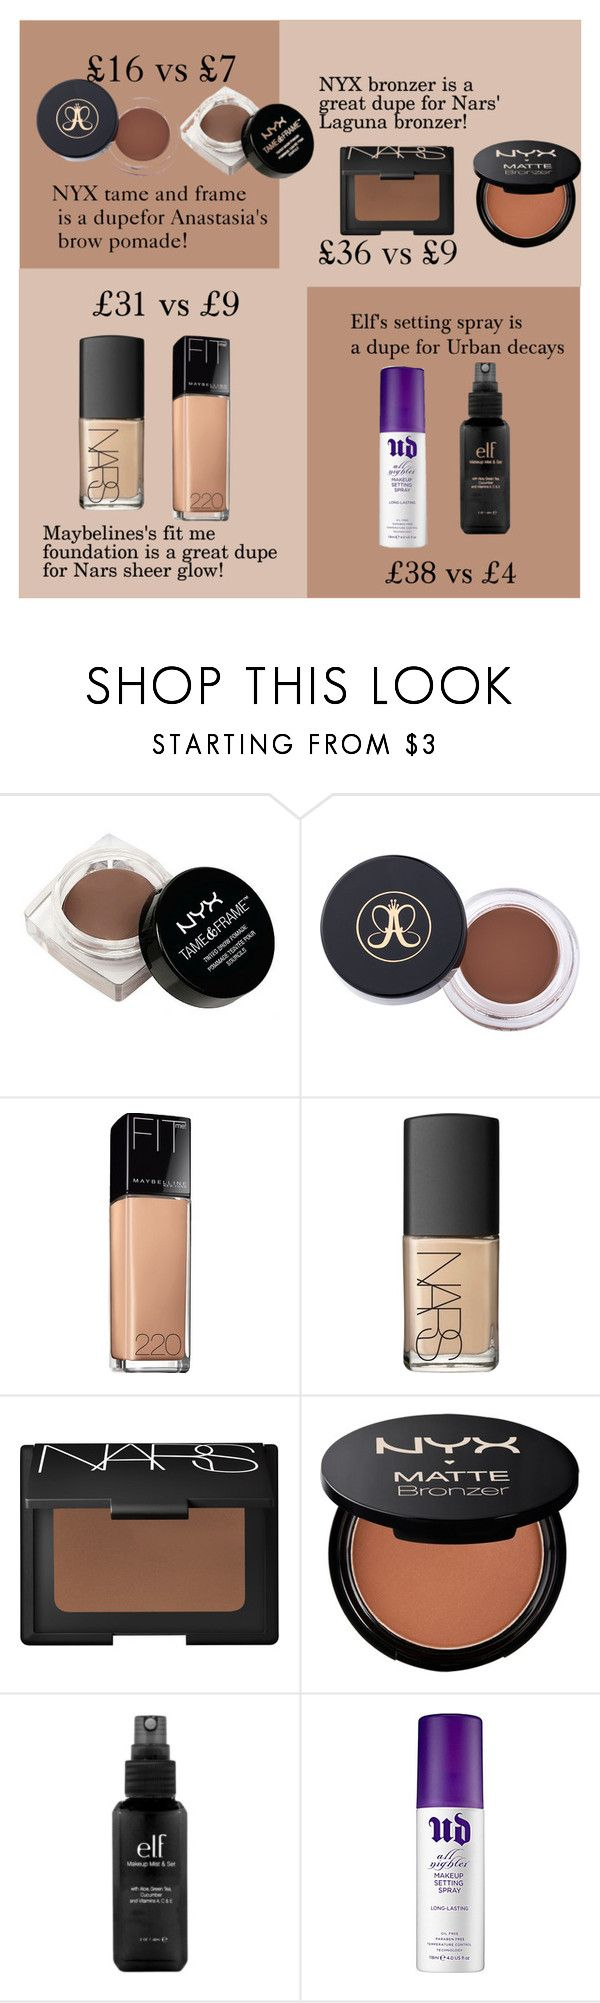 """Makeup dupes!"" by olidys ❤ liked on Polyvore featuring beauty, NYX, Maybelline, NARS Cosmetics, e.l.f., Urban Decay and beautydupes"